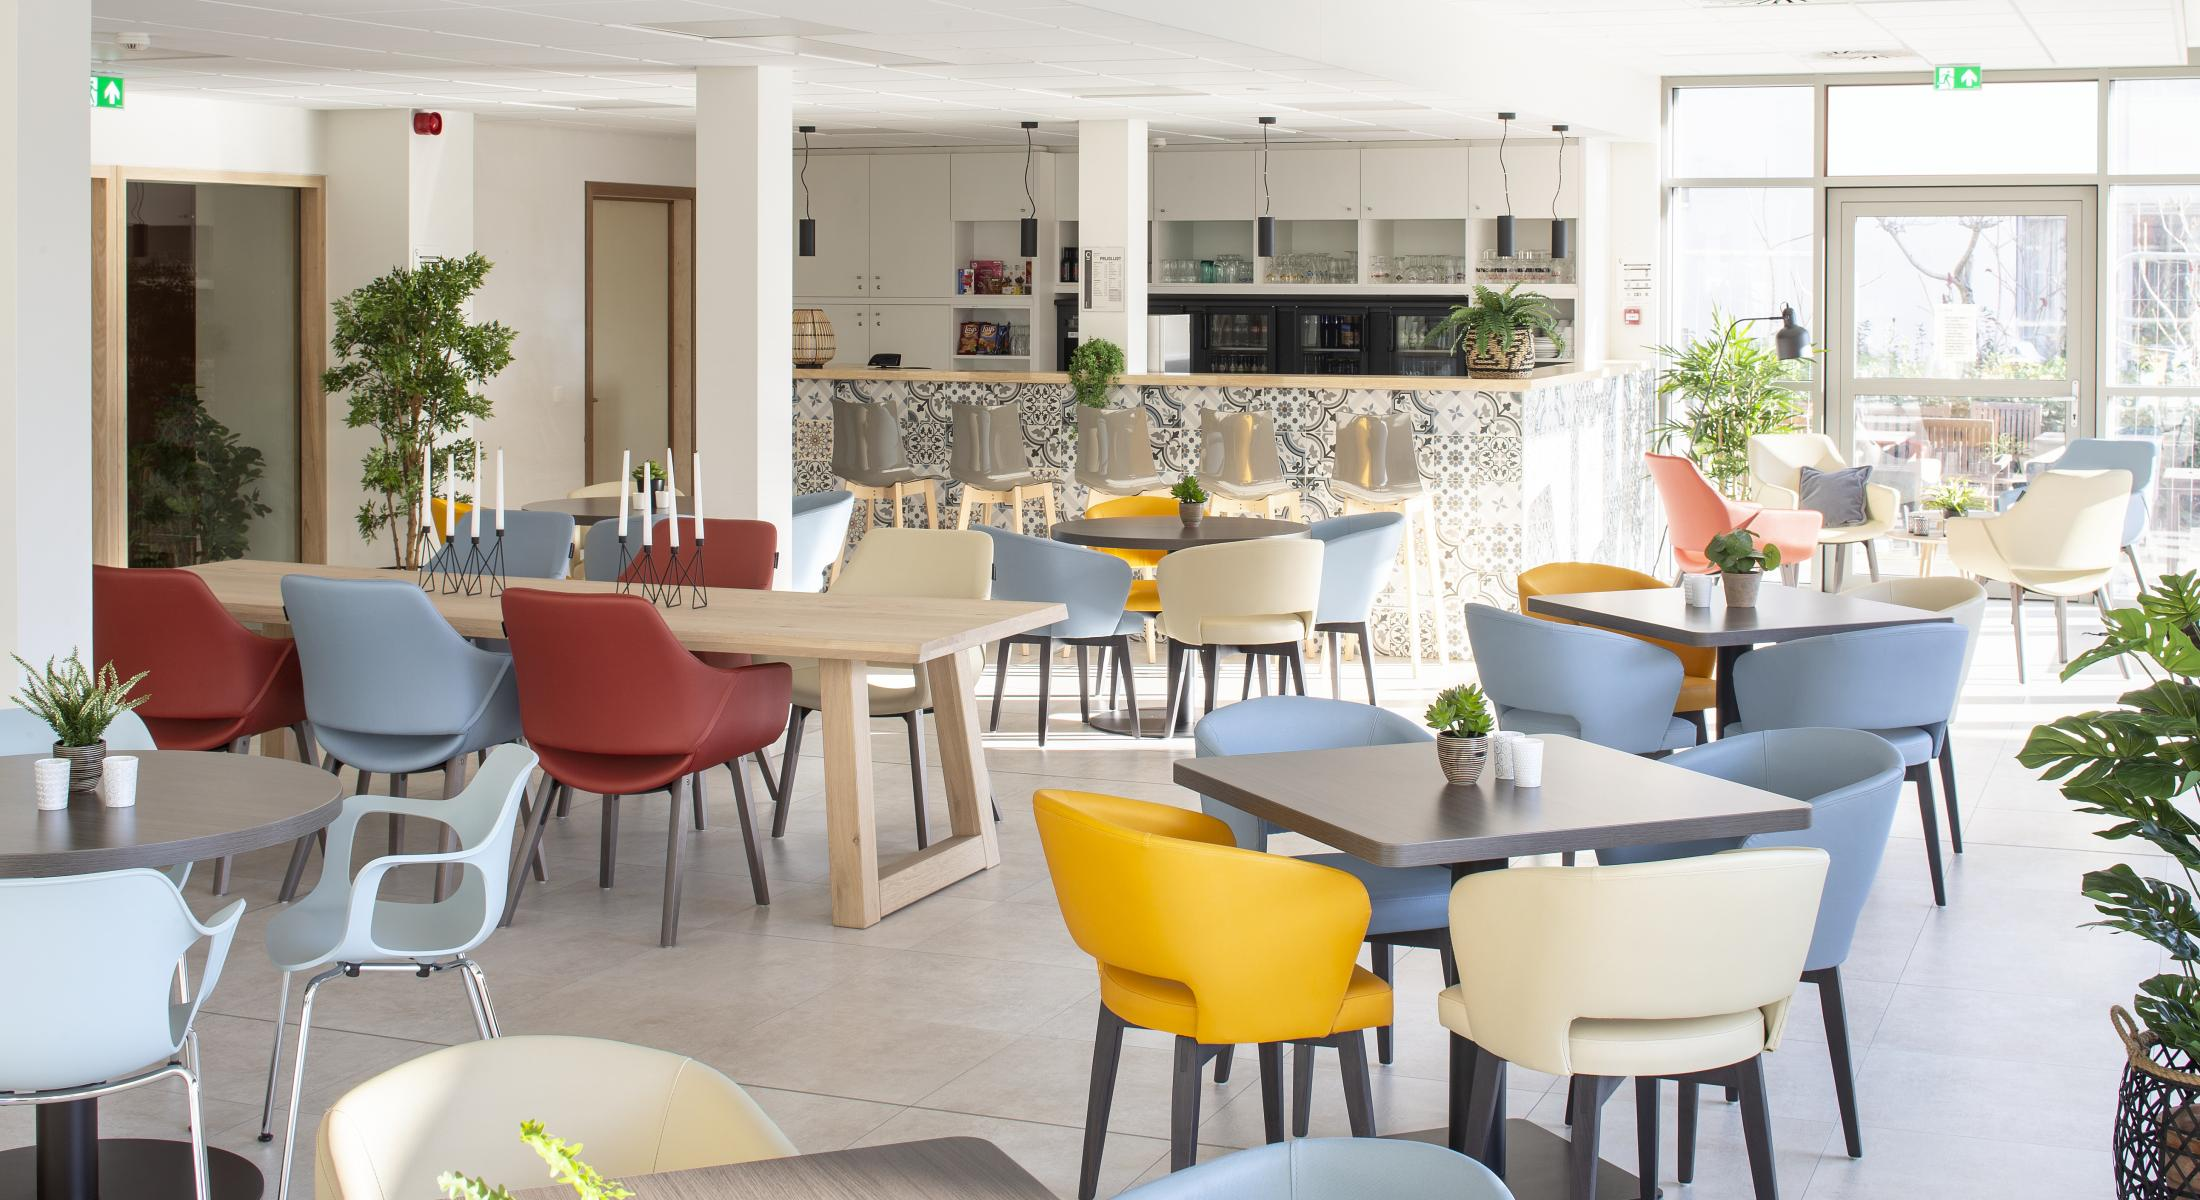 Creating Hospitality - WZC Lacourt Oostende - moments furniture (2)